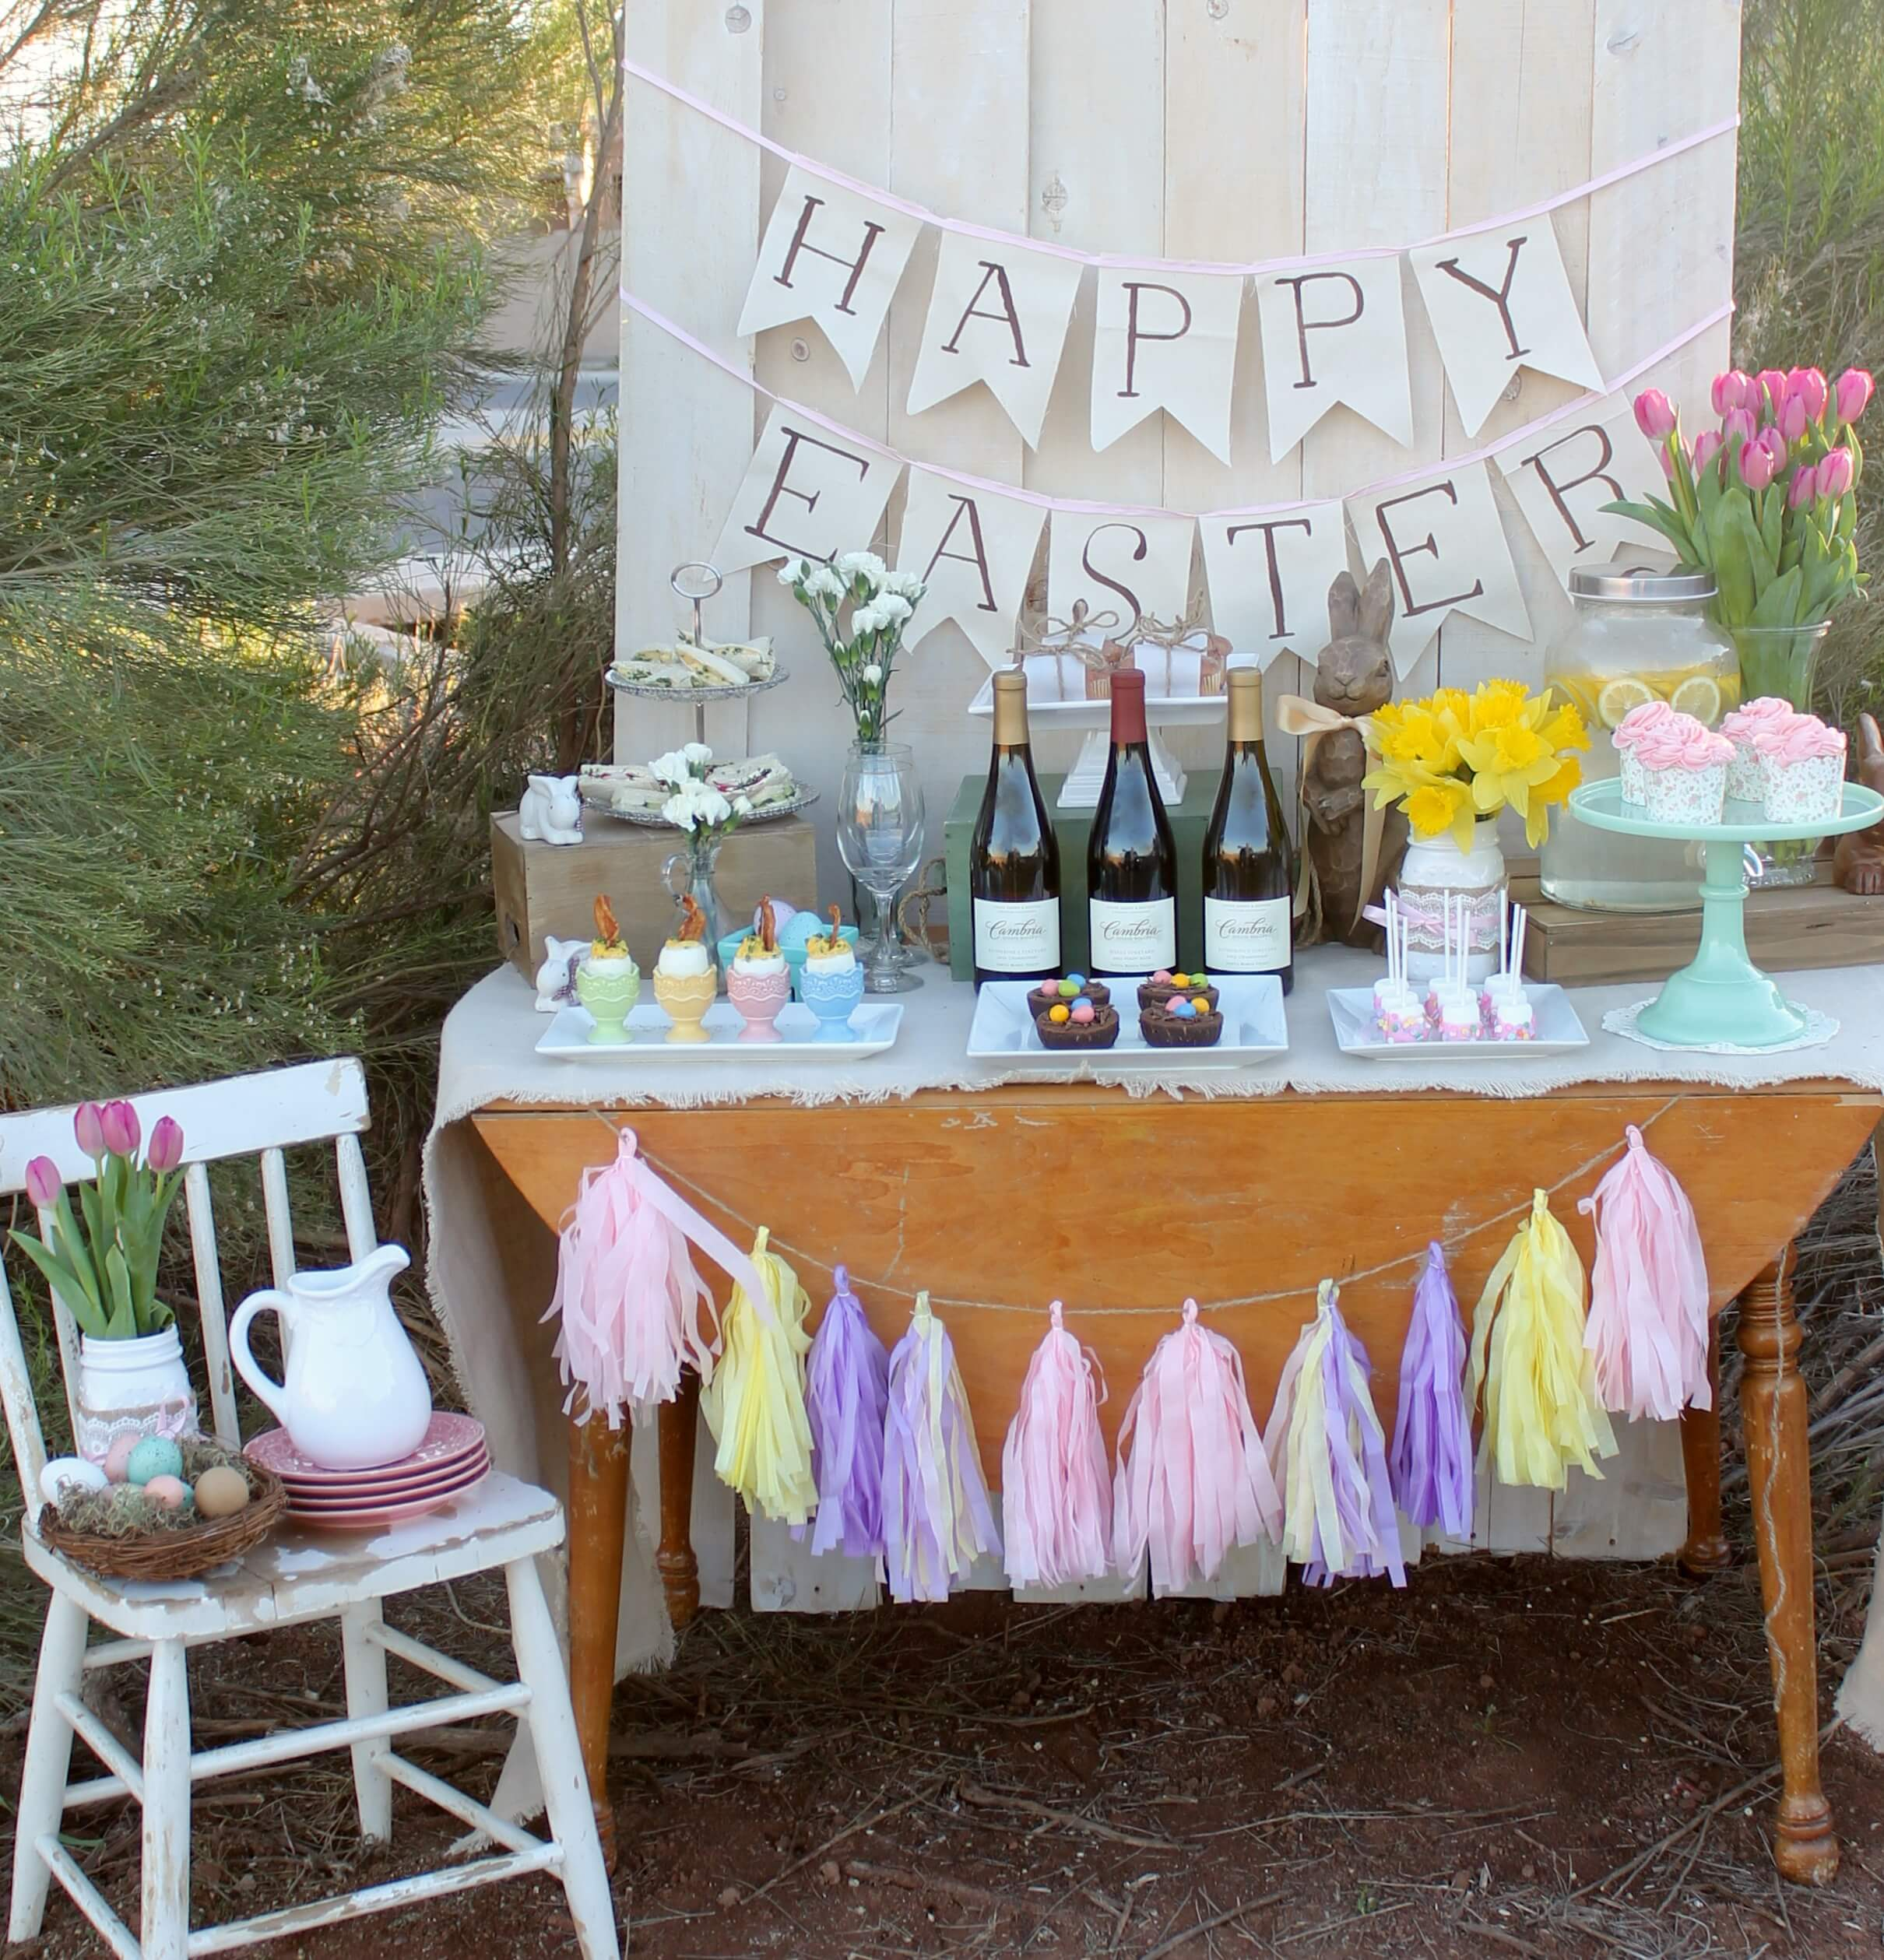 Easter sunday brunch table mythirtyspot for Outdoor brunch decorating ideas